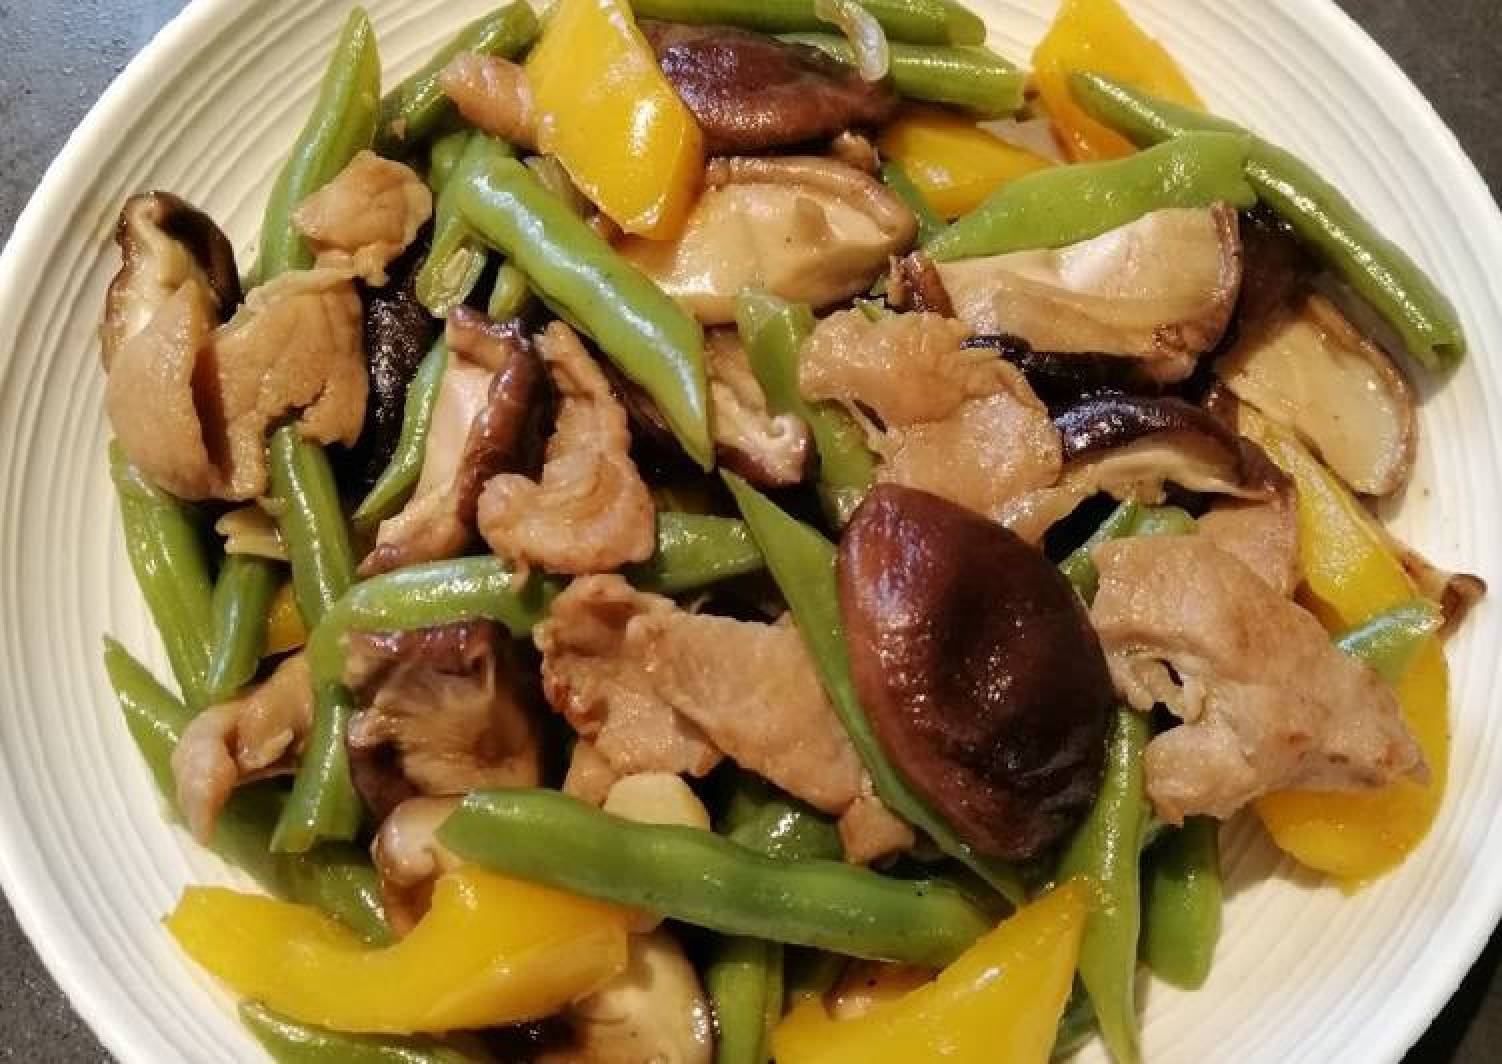 French Beans Mix